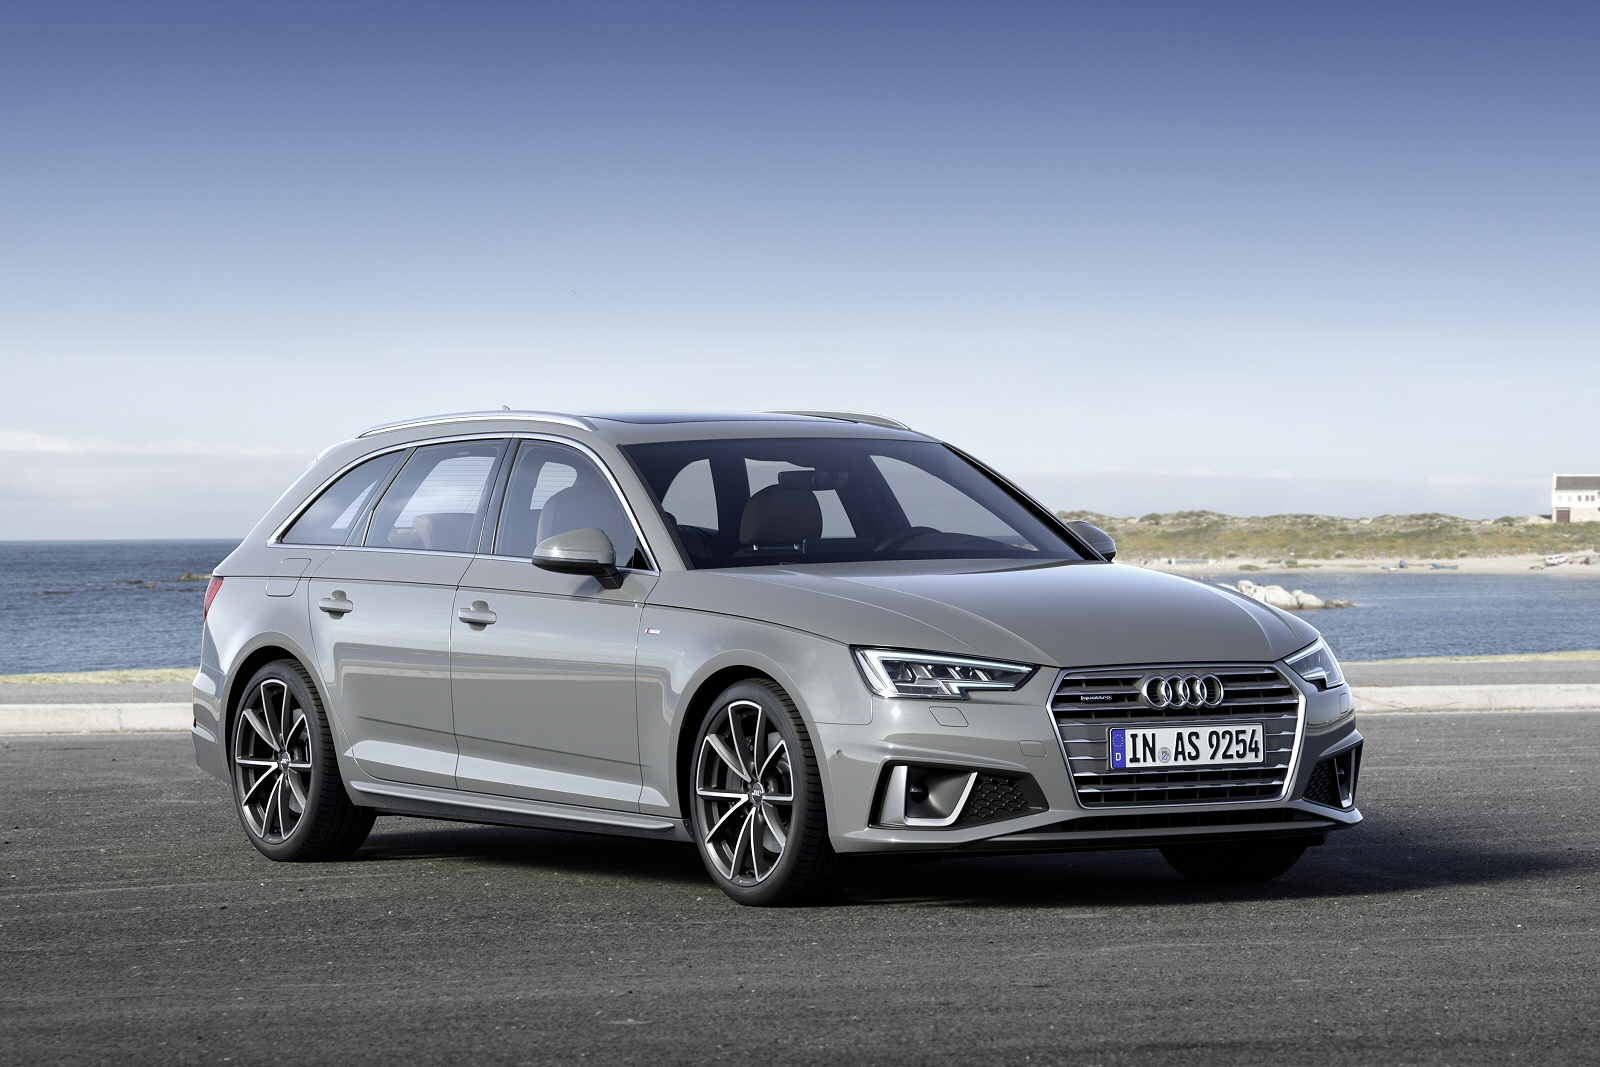 New Audi A4 35 Tfsi Black Edition 5dr S Tronic Petrol Estate For